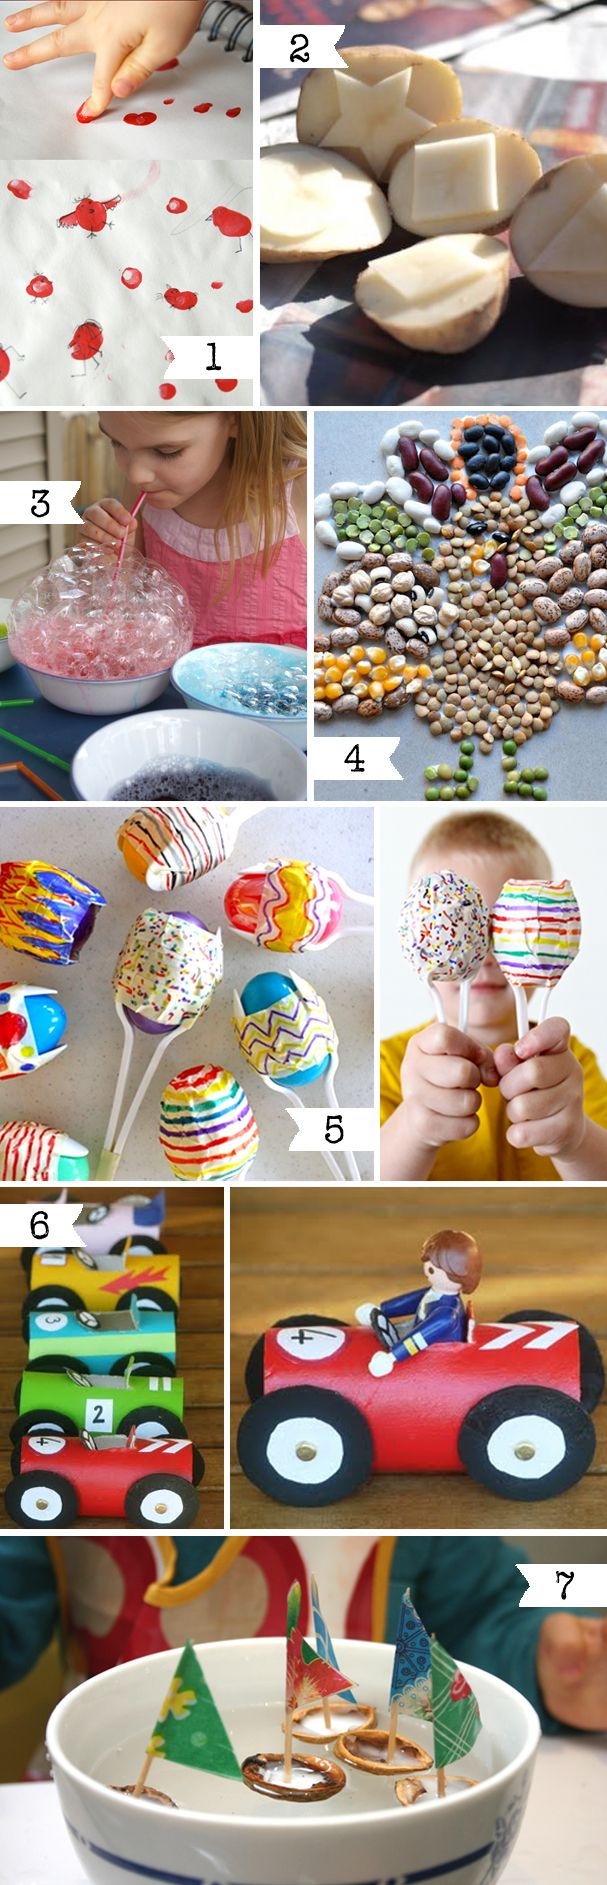 ideas for fingerprint animals, dried bean art, toilet paper roll cars and walnut shell boats (with wax inside and a toothpick for a mast) - in french